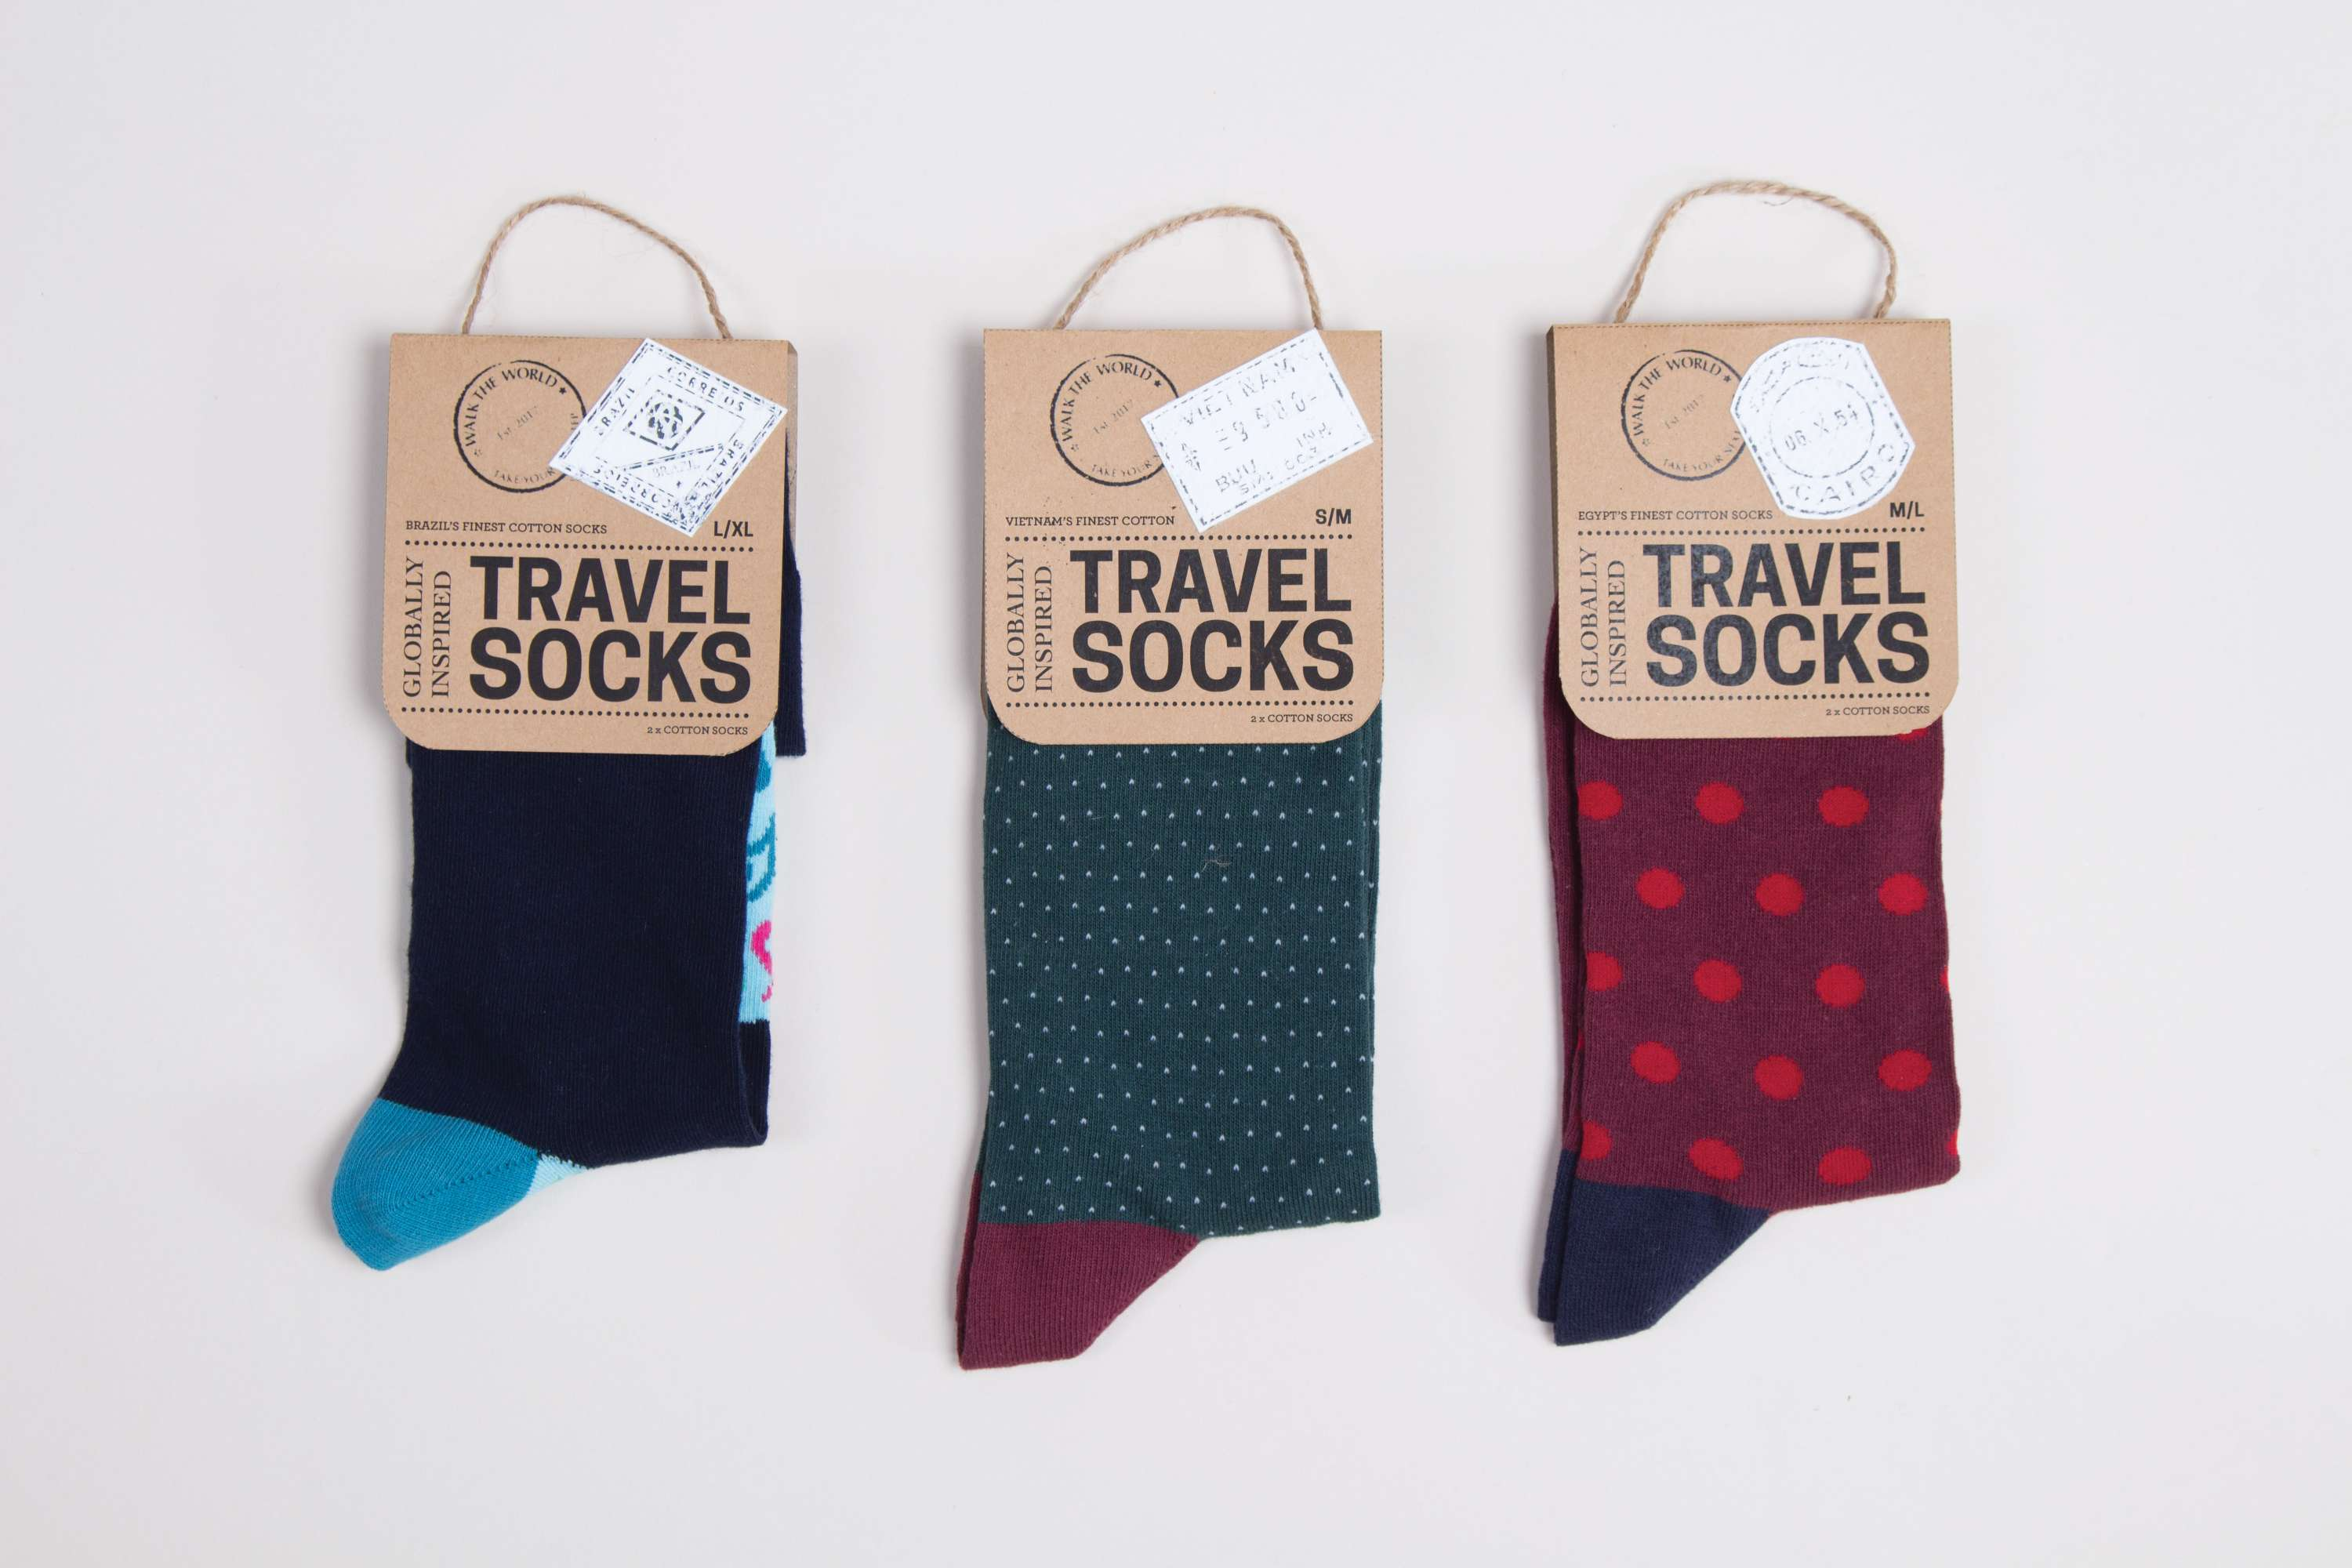 packaging for the walk the world socks company the dots